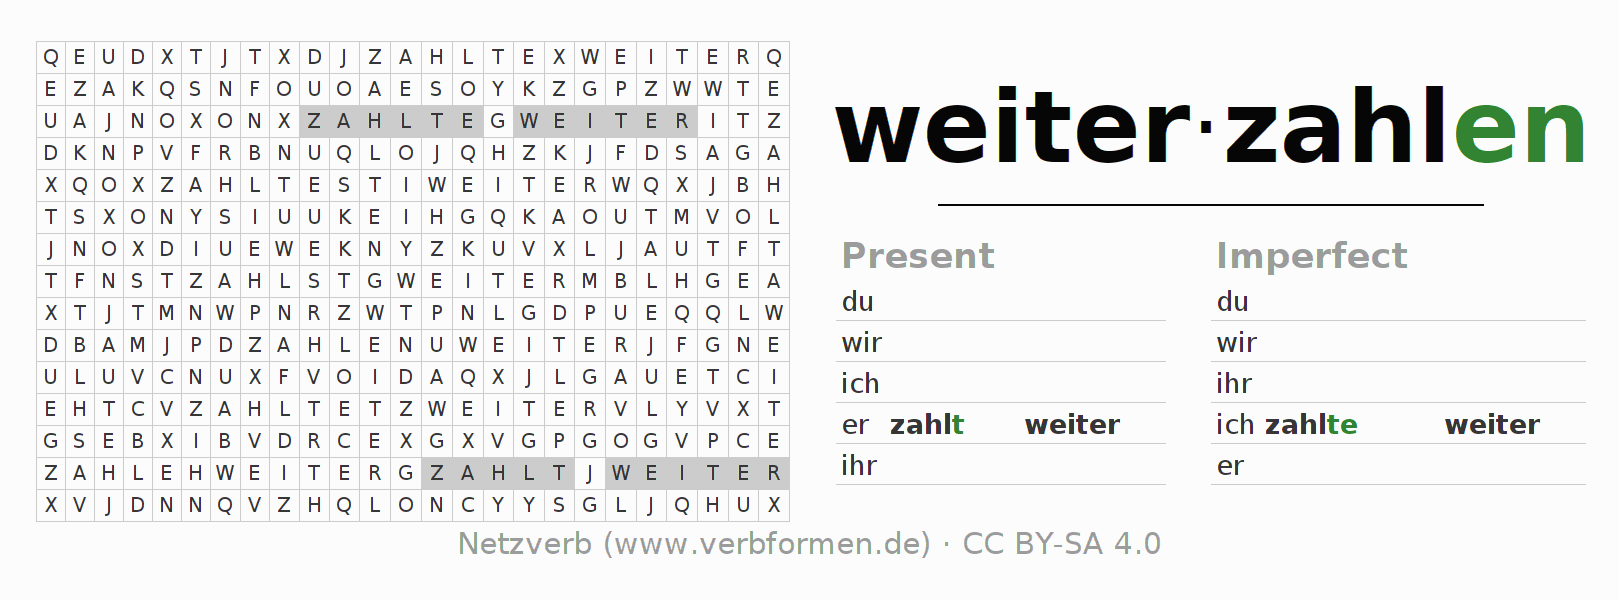 Word search puzzle for the conjugation of the verb weiterzahlen